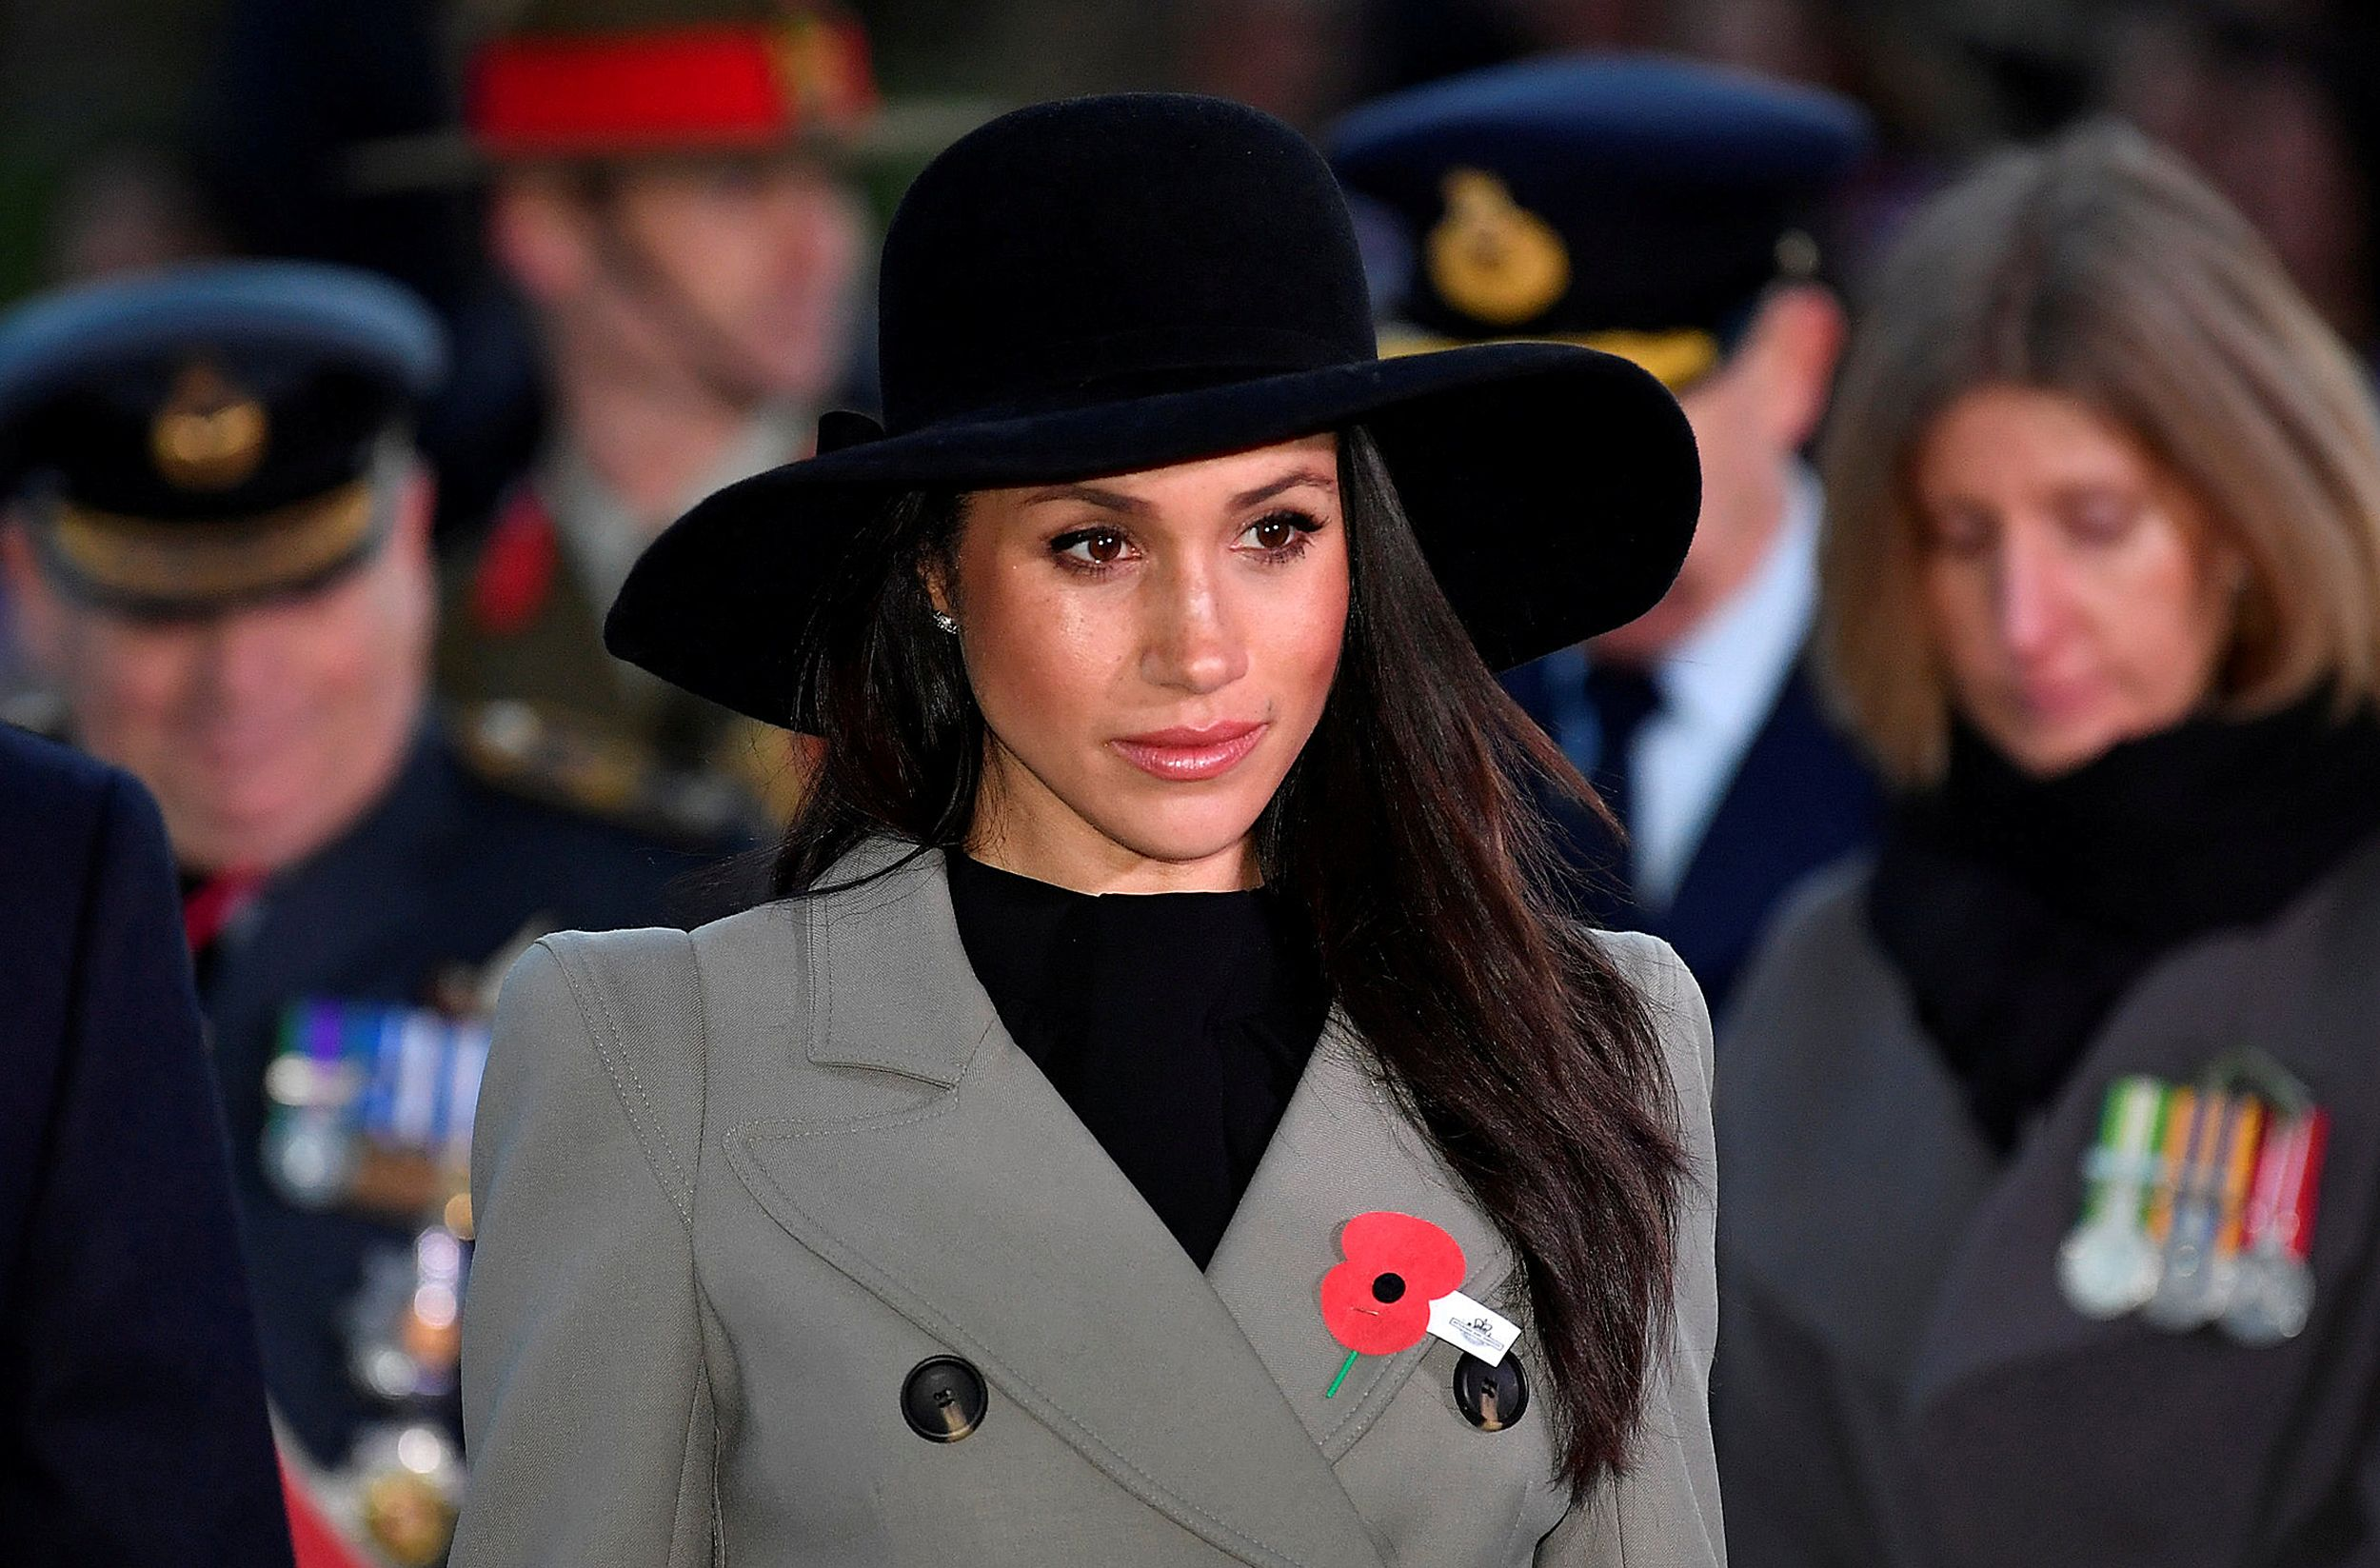 Why Meghan Markle Is Done 'Playing by the Rules' After UK Press' Treatment